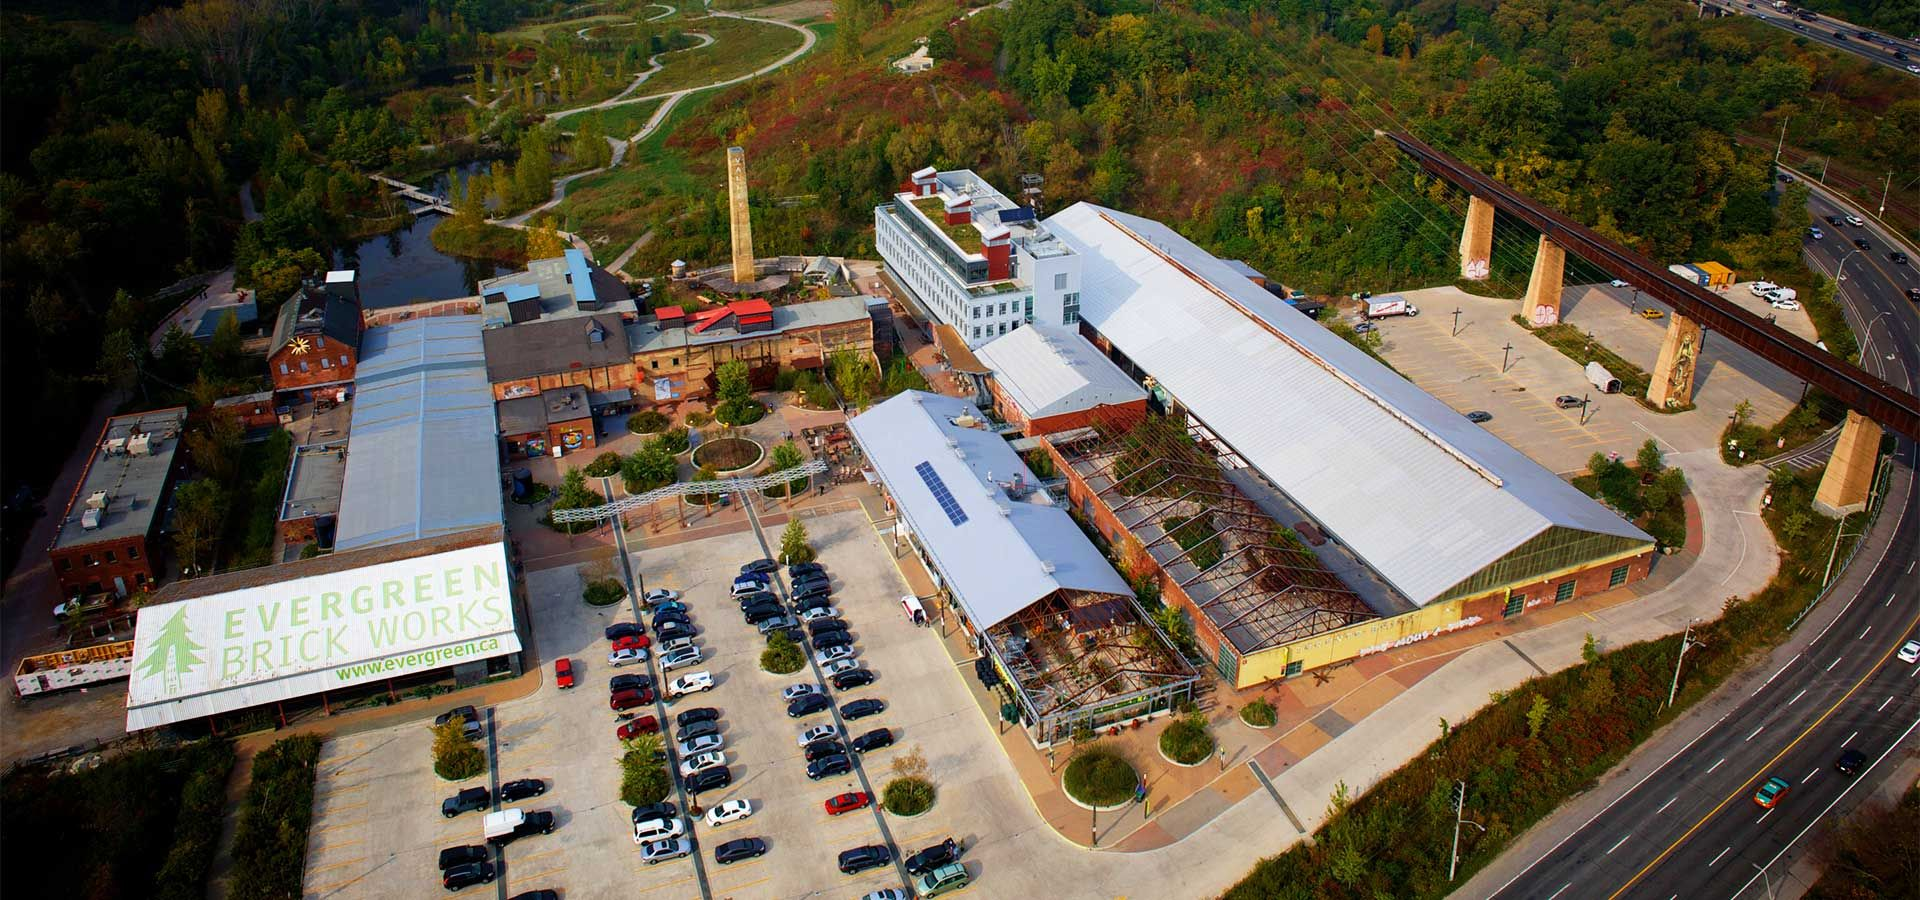 An aerial view of Evergreen Brick Works.